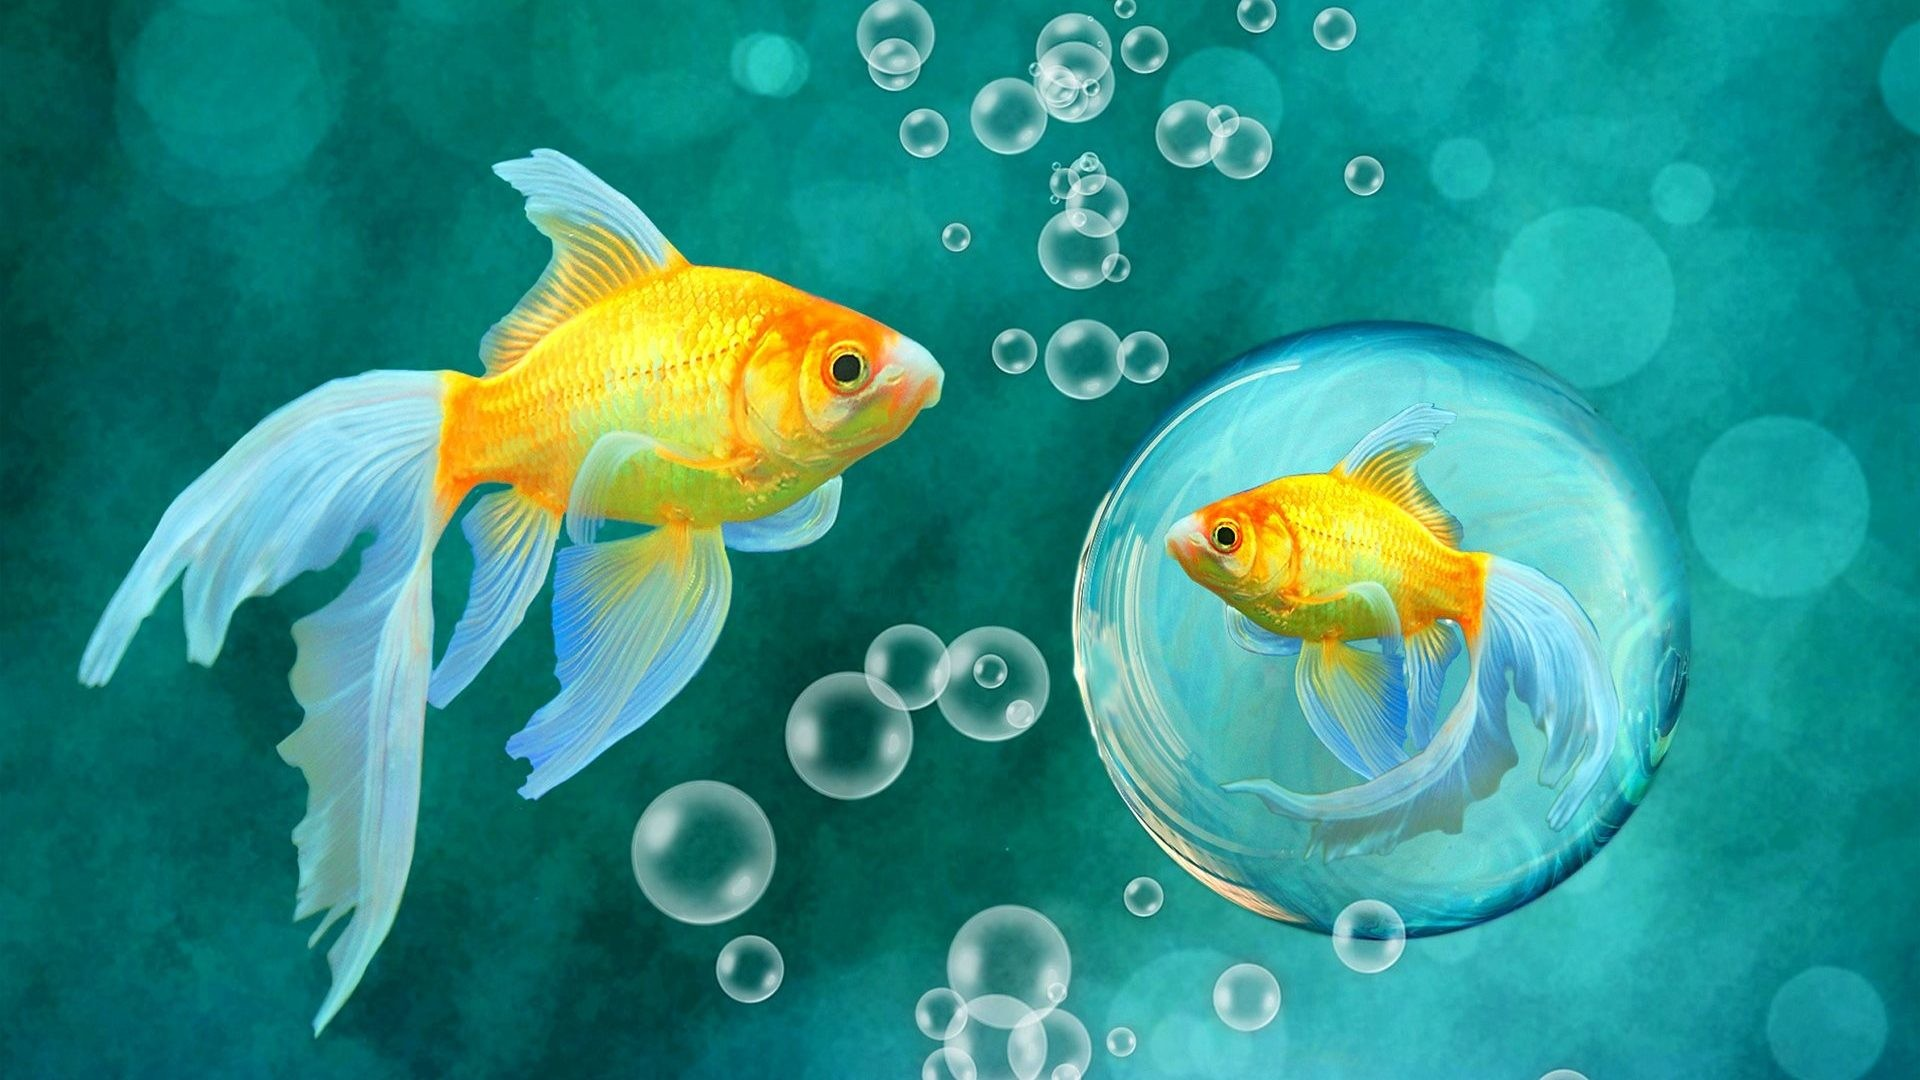 #55BBCC Color – Ocean Underwater Sea Sealife Fish Fishes Nature Desktop  Themes Free Download for